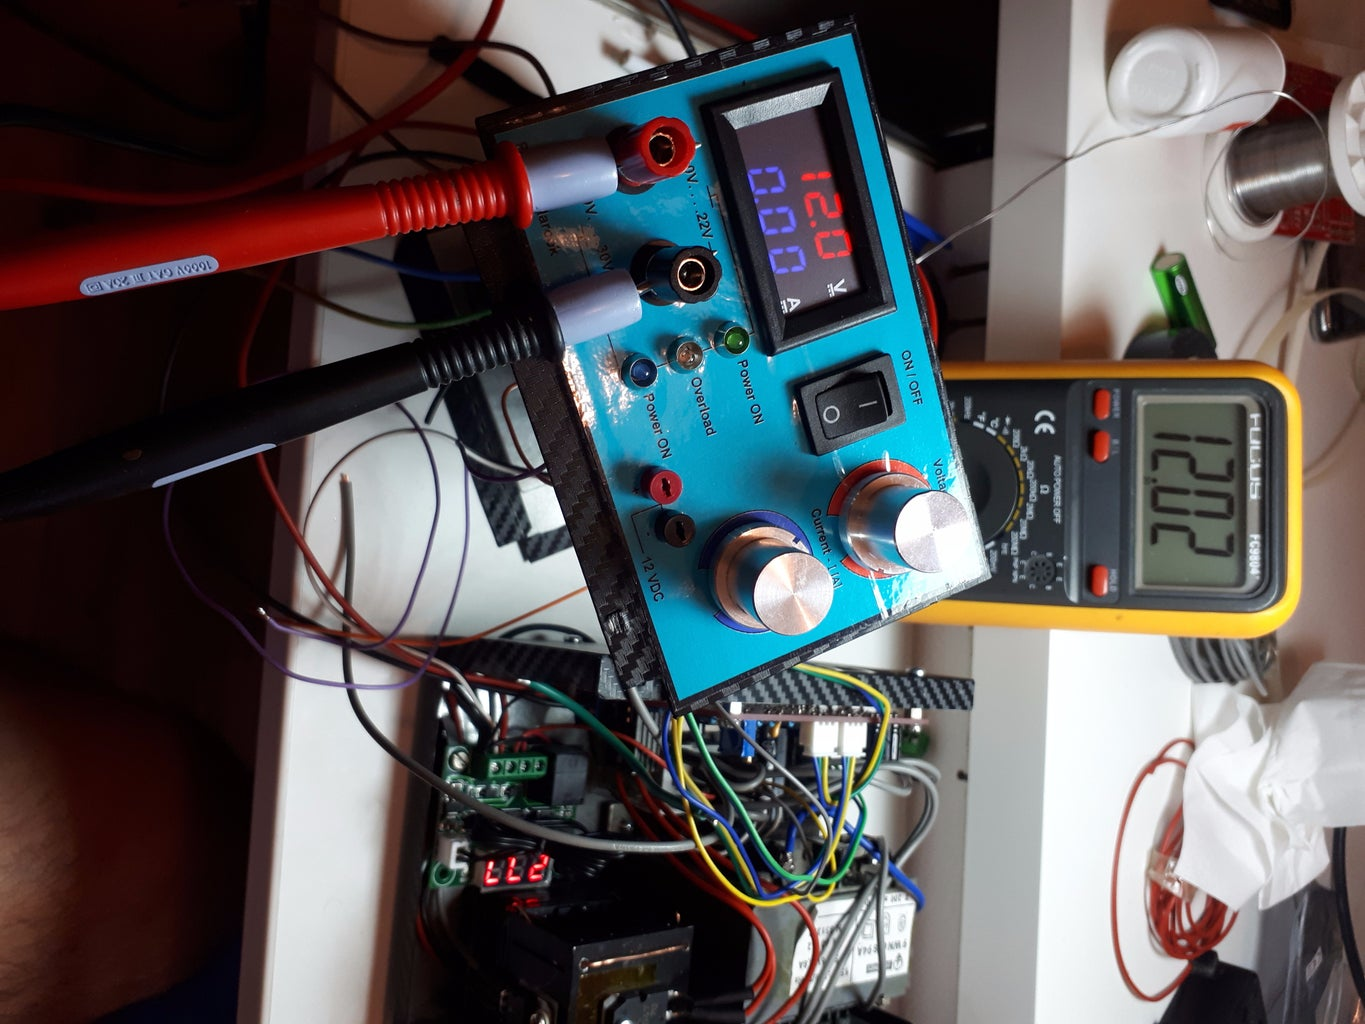 Calibration and Setting of the Thermostat